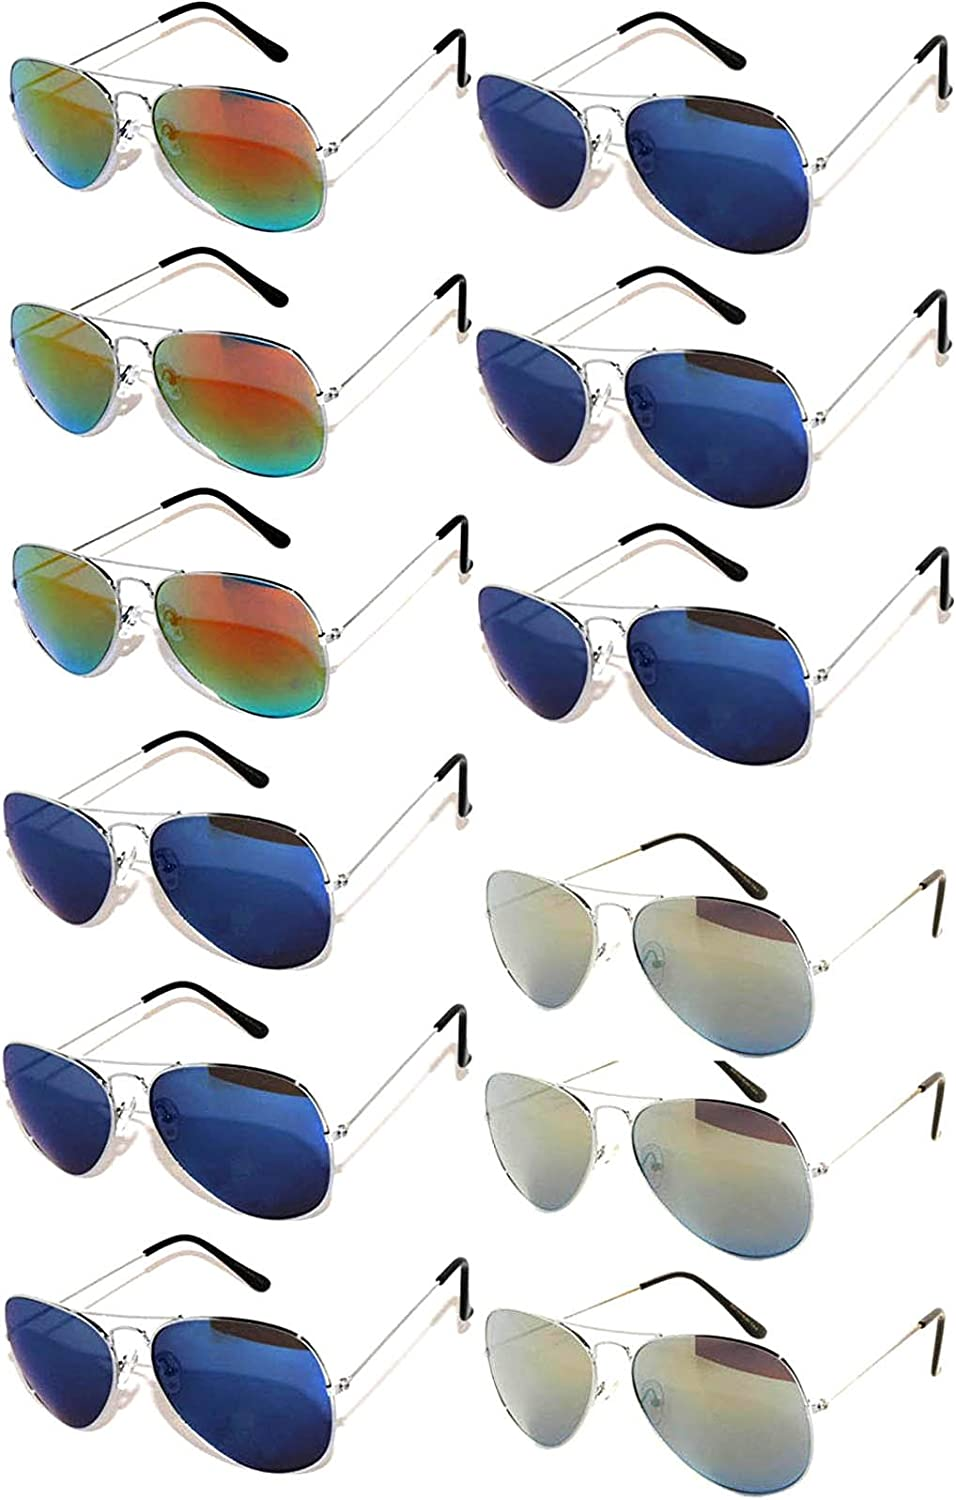 12 Pack Aviator Eyeglasses Metal gold, Silver, Black Frame colord Mirror Lens OWL.